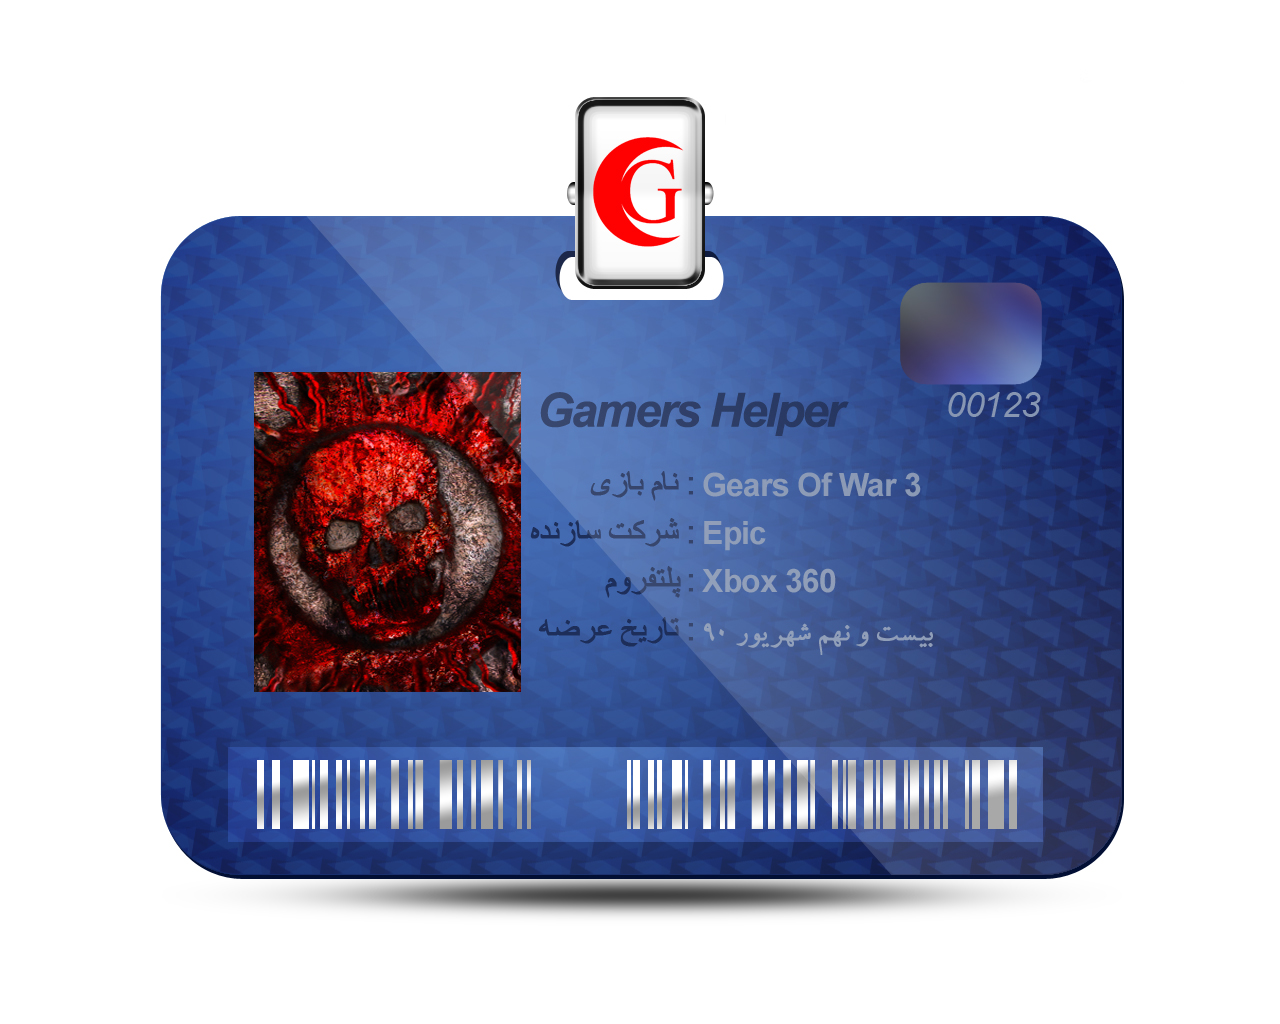 http://games2iran.persiangig.com/image/Gamers%20Helper/gears%203%20name.jpg